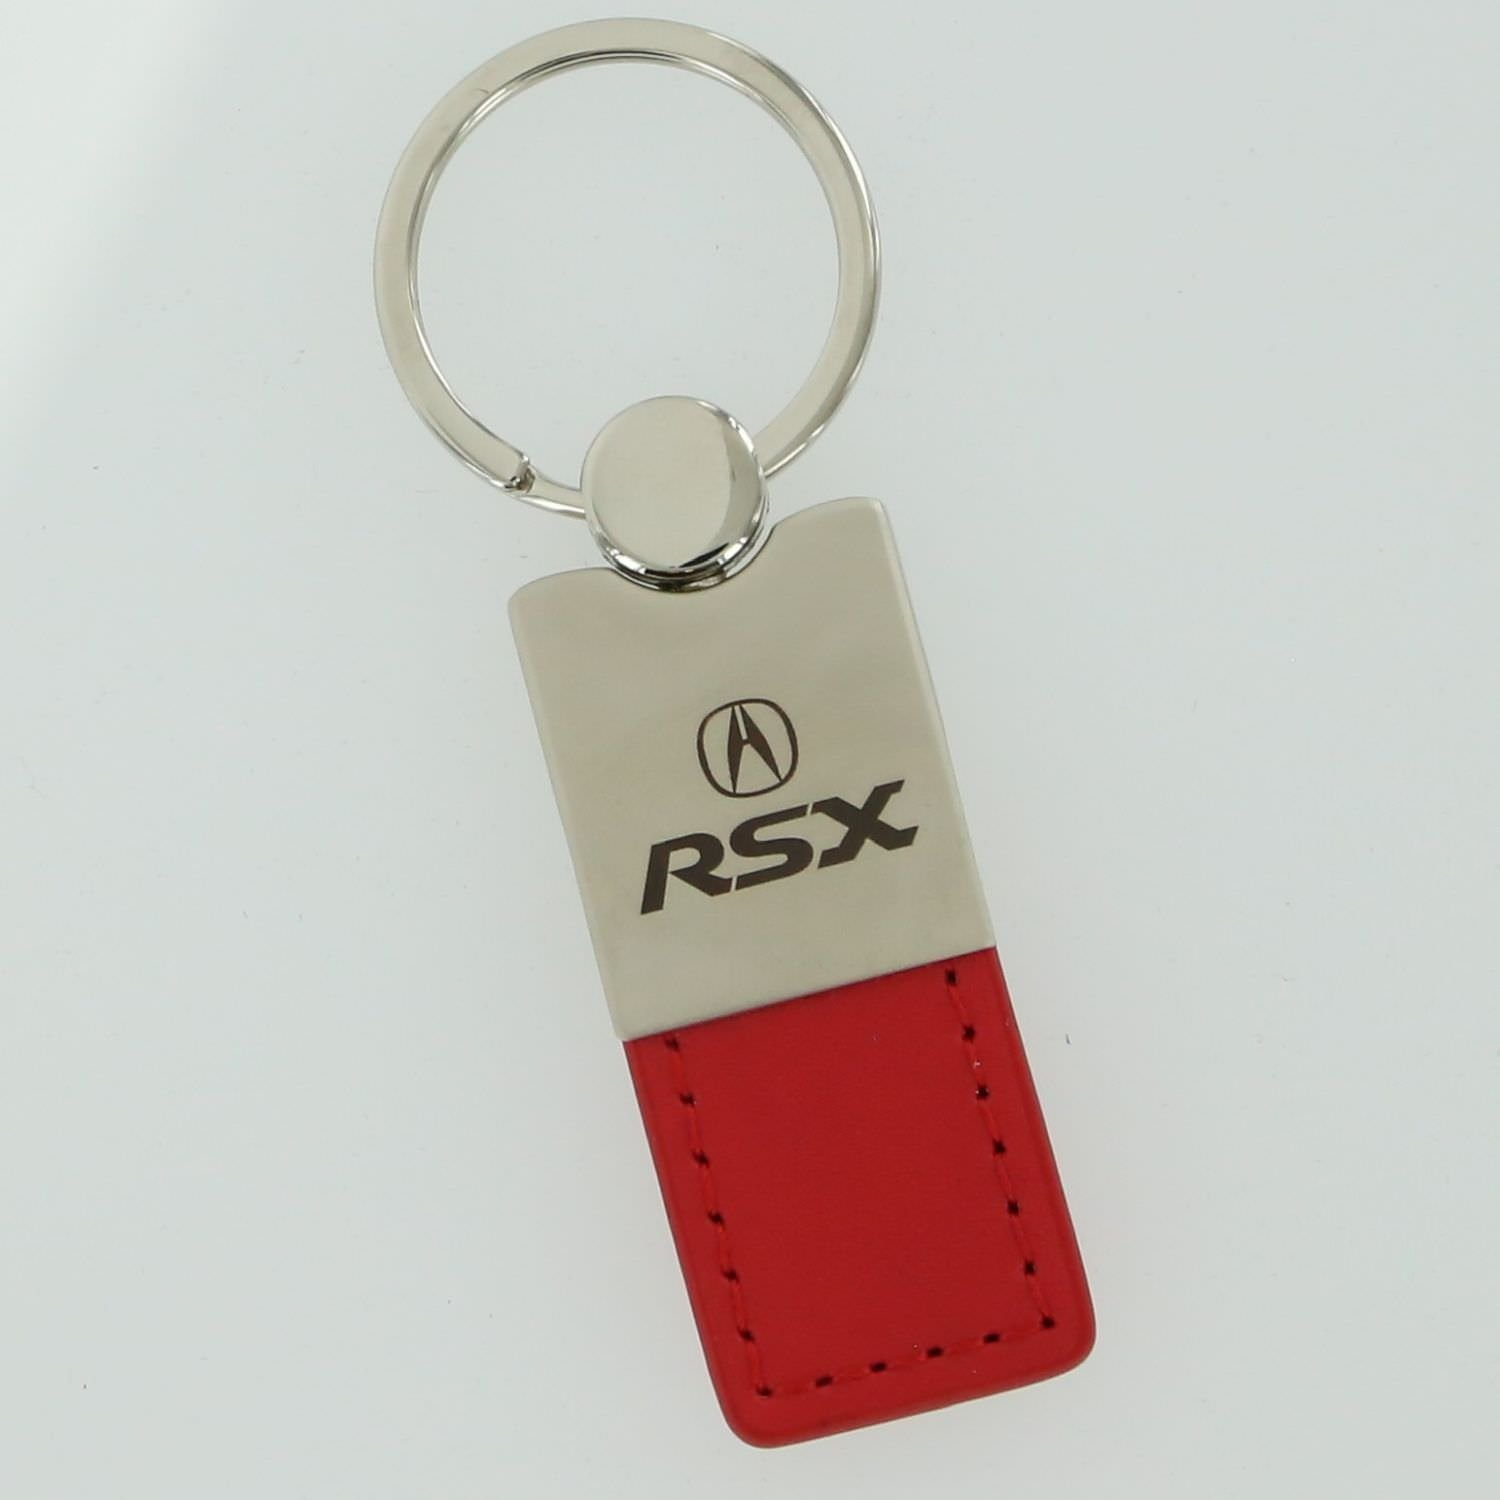 Acura RSX Red Leather Key Ring